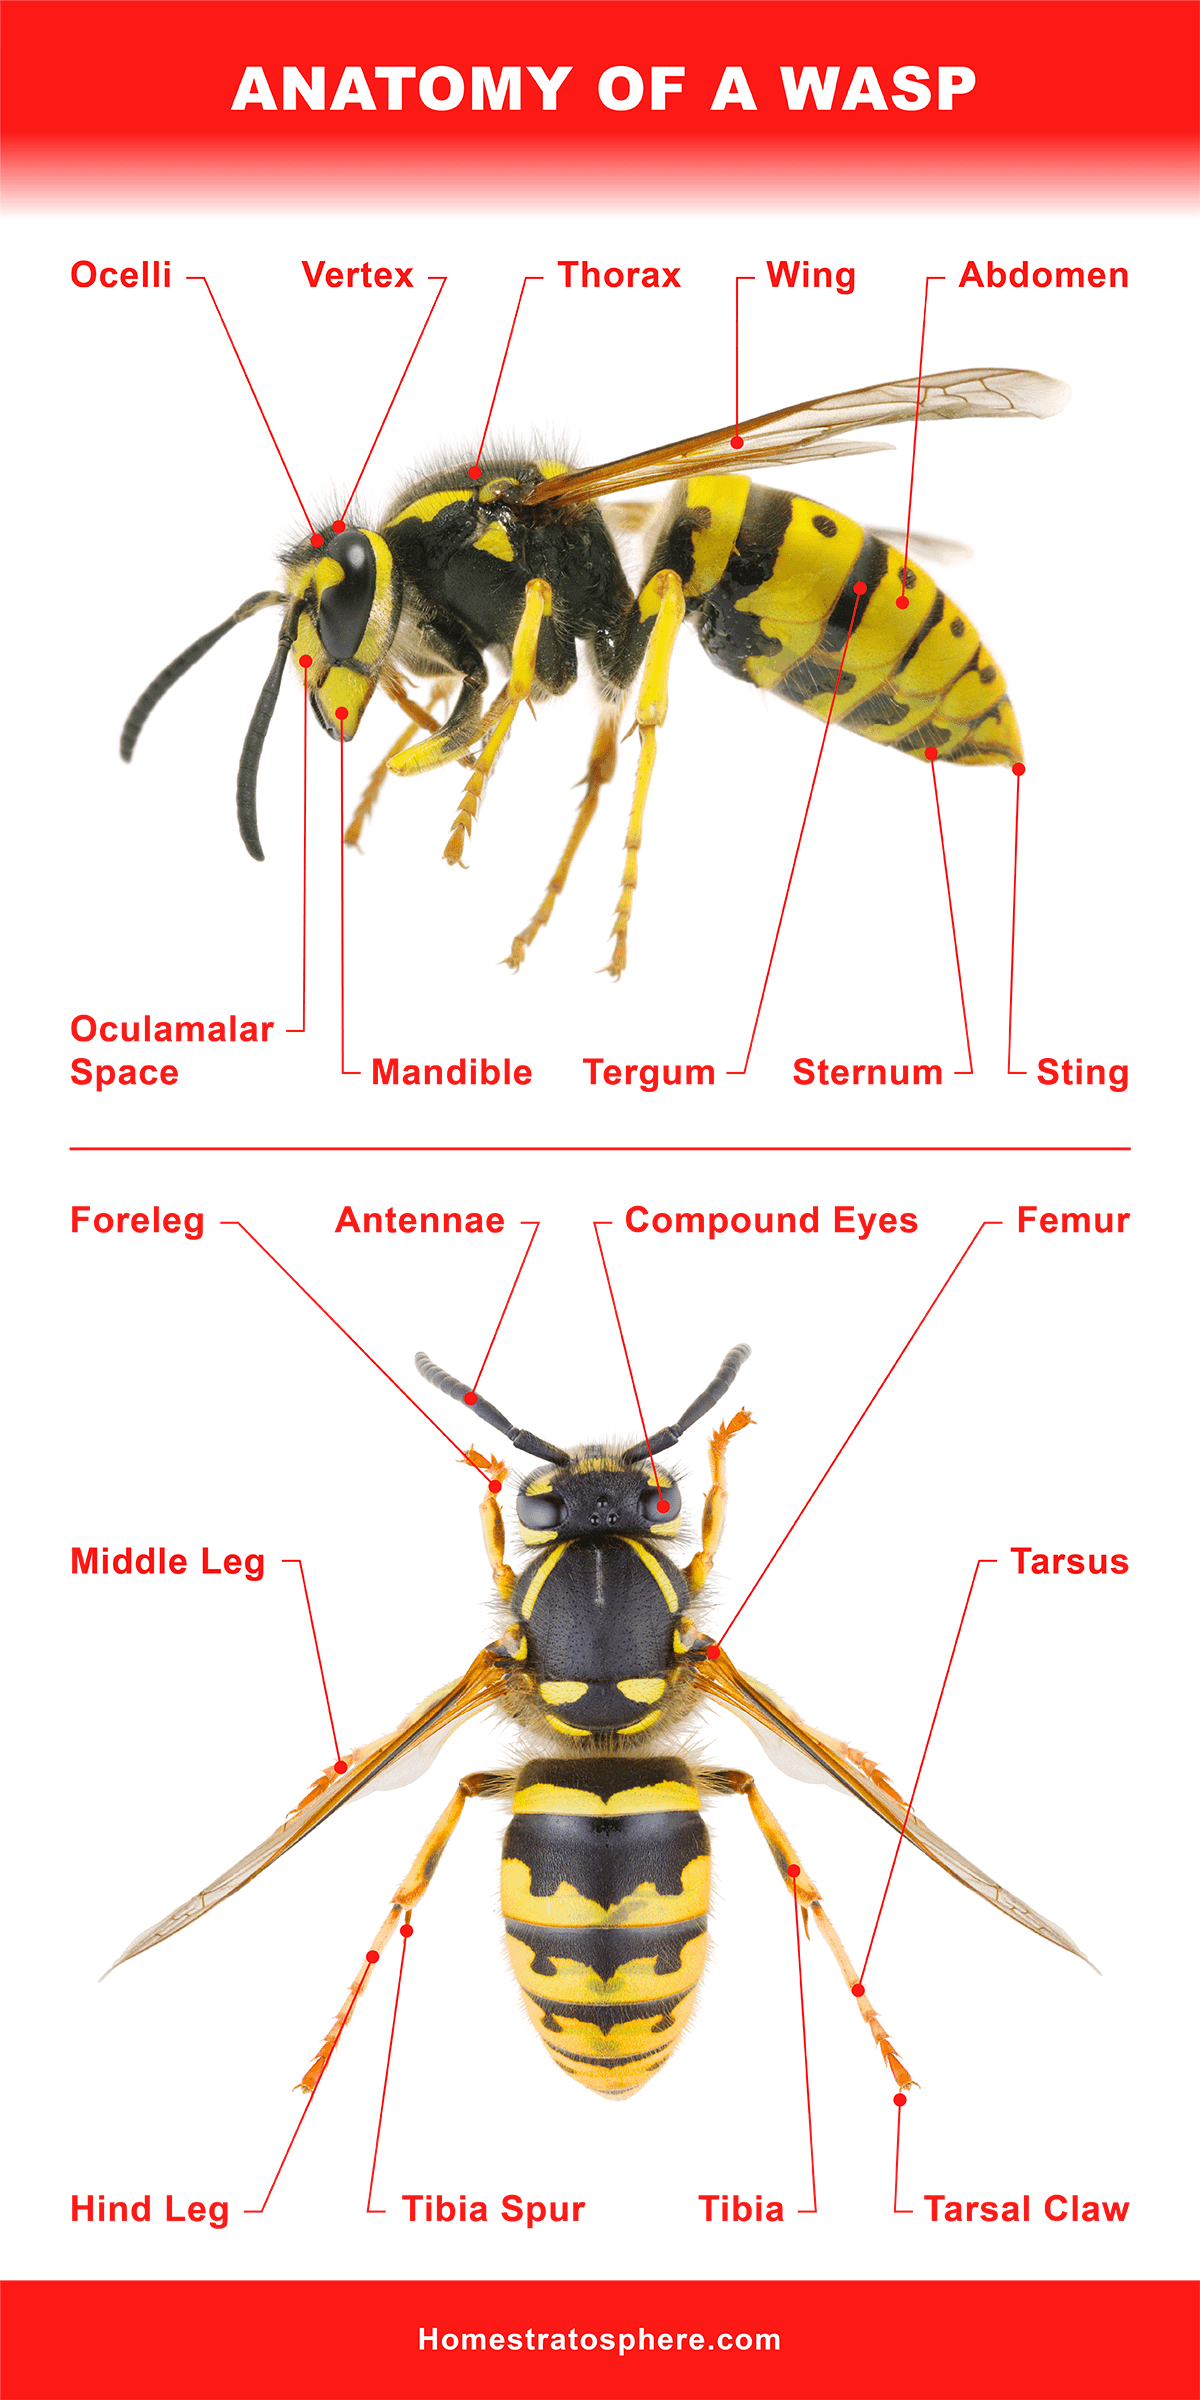 Anatomy of a Wasp